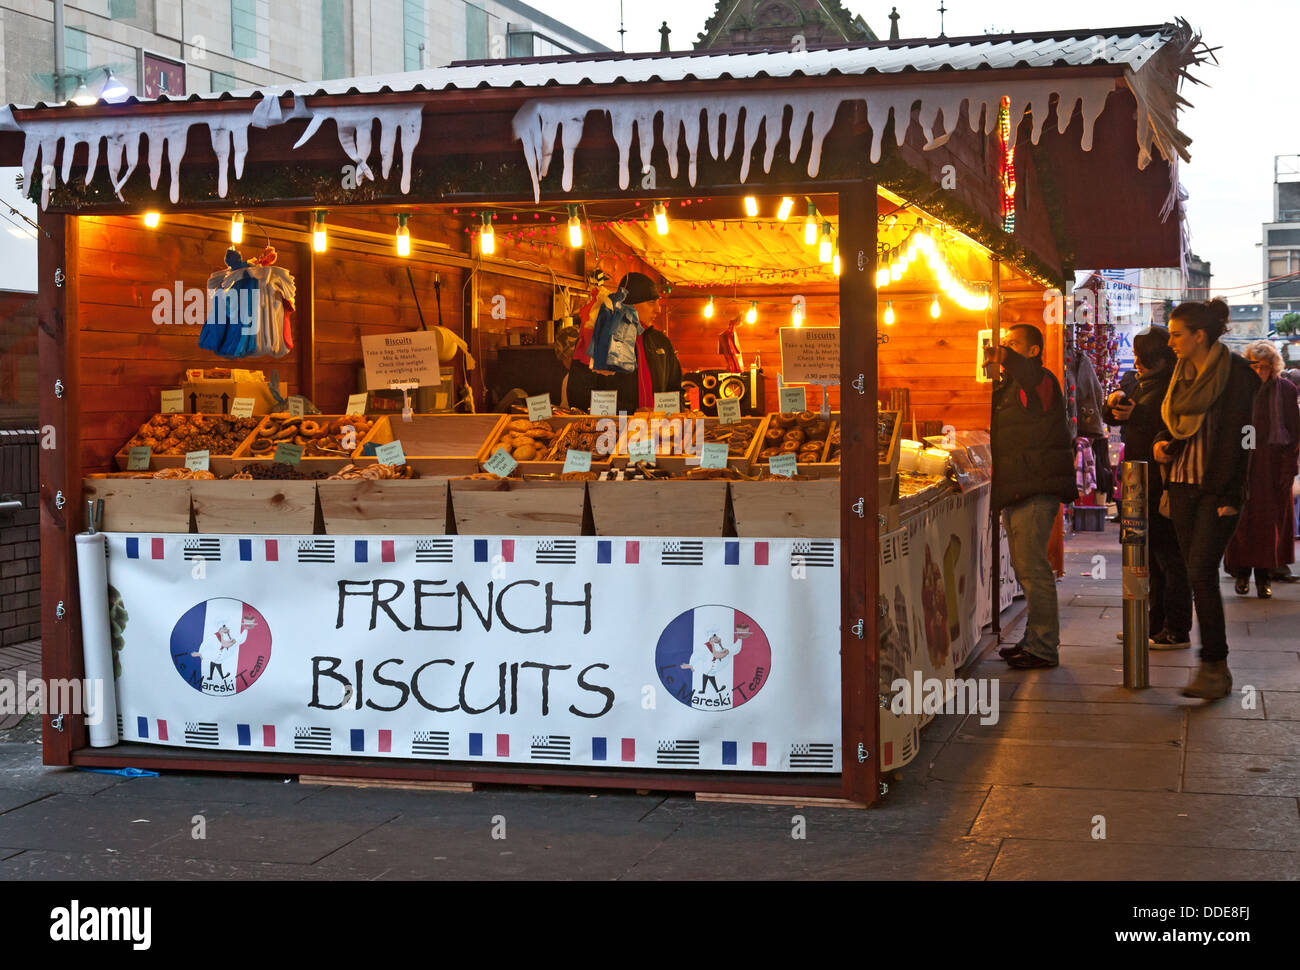 Customers browsing a Le Mareski Team French Biscuits stall at the Christmas Market, St Enoch Square, Glasgow - Stock Image